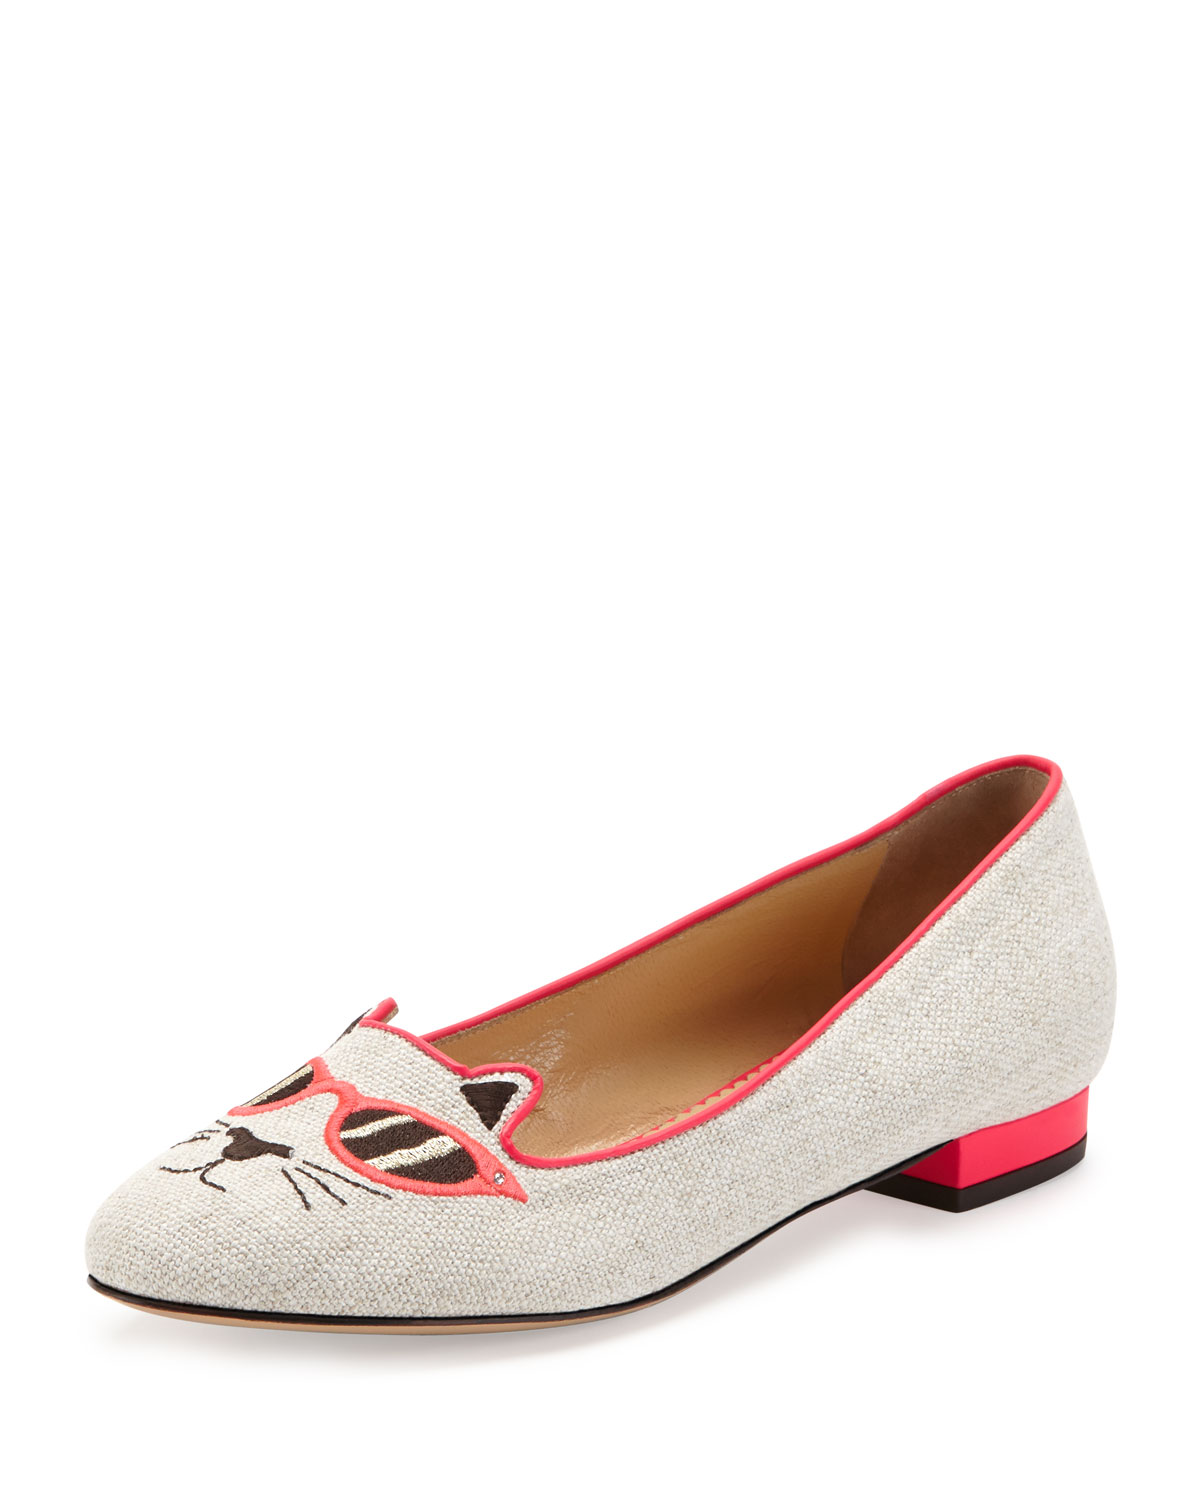 Charlotte Olympia Sunkissed Kitty Canvas Flat Green In